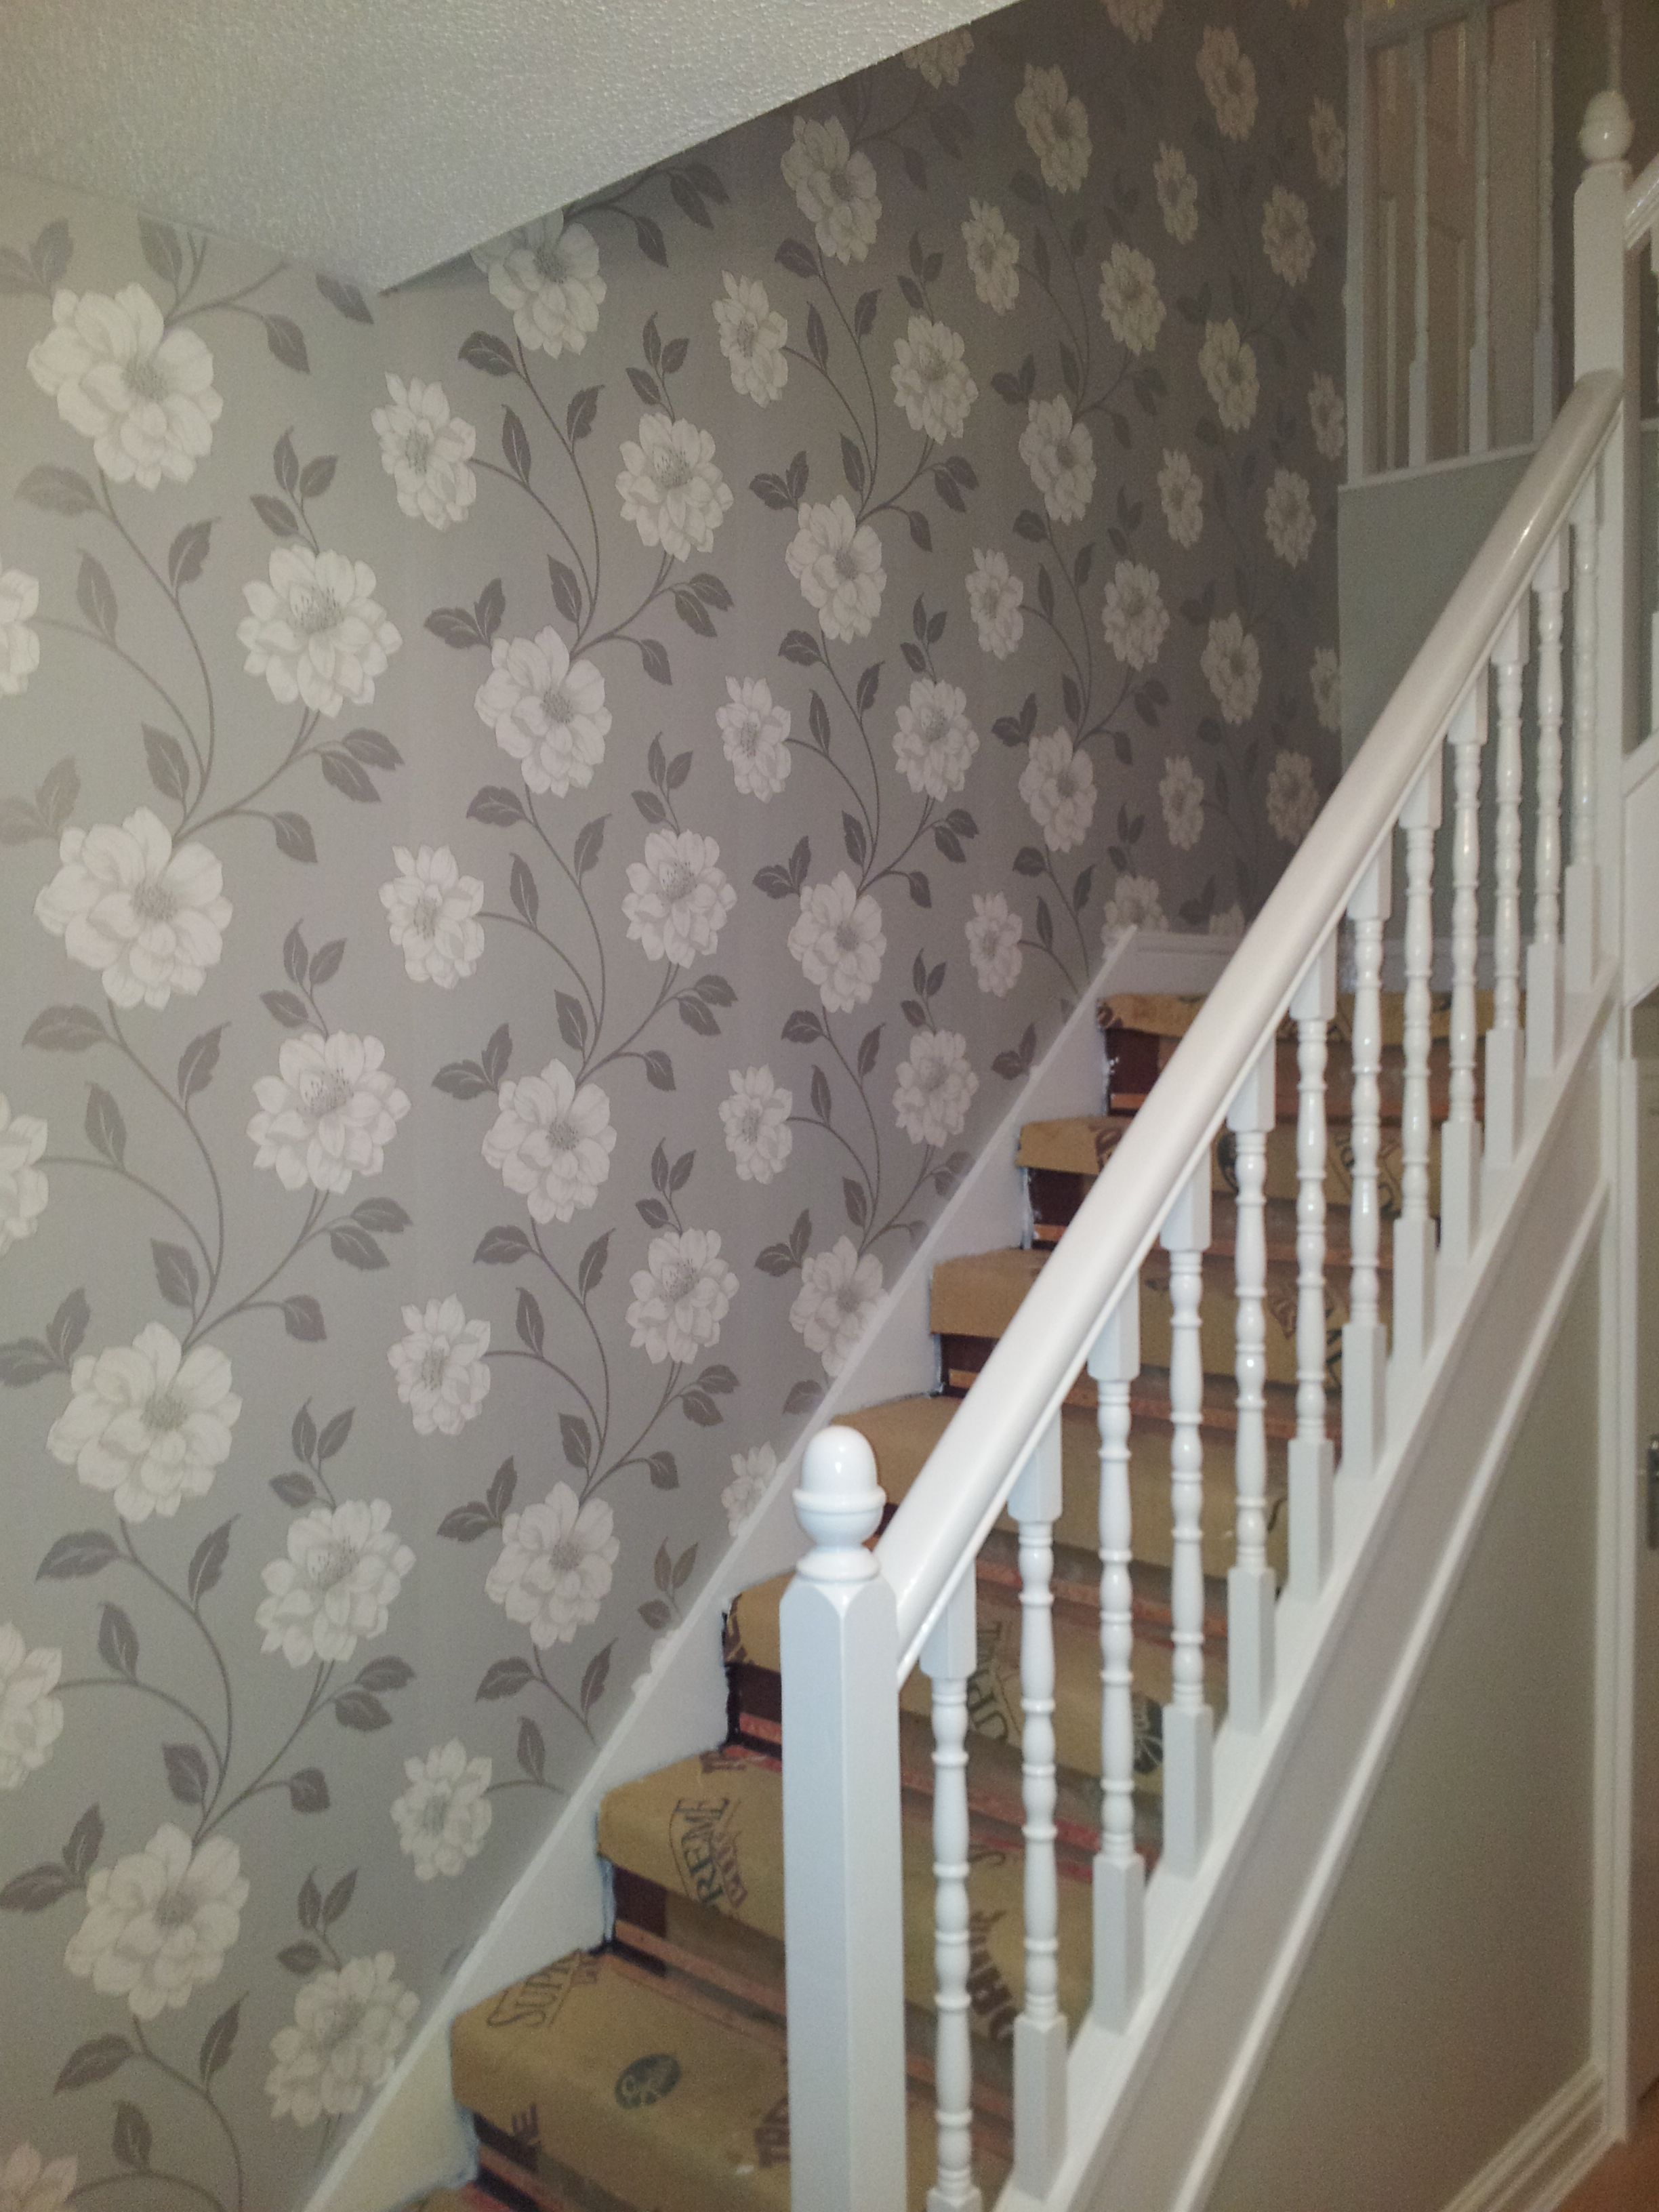 Stairs Wall in Patterned Wallpaper